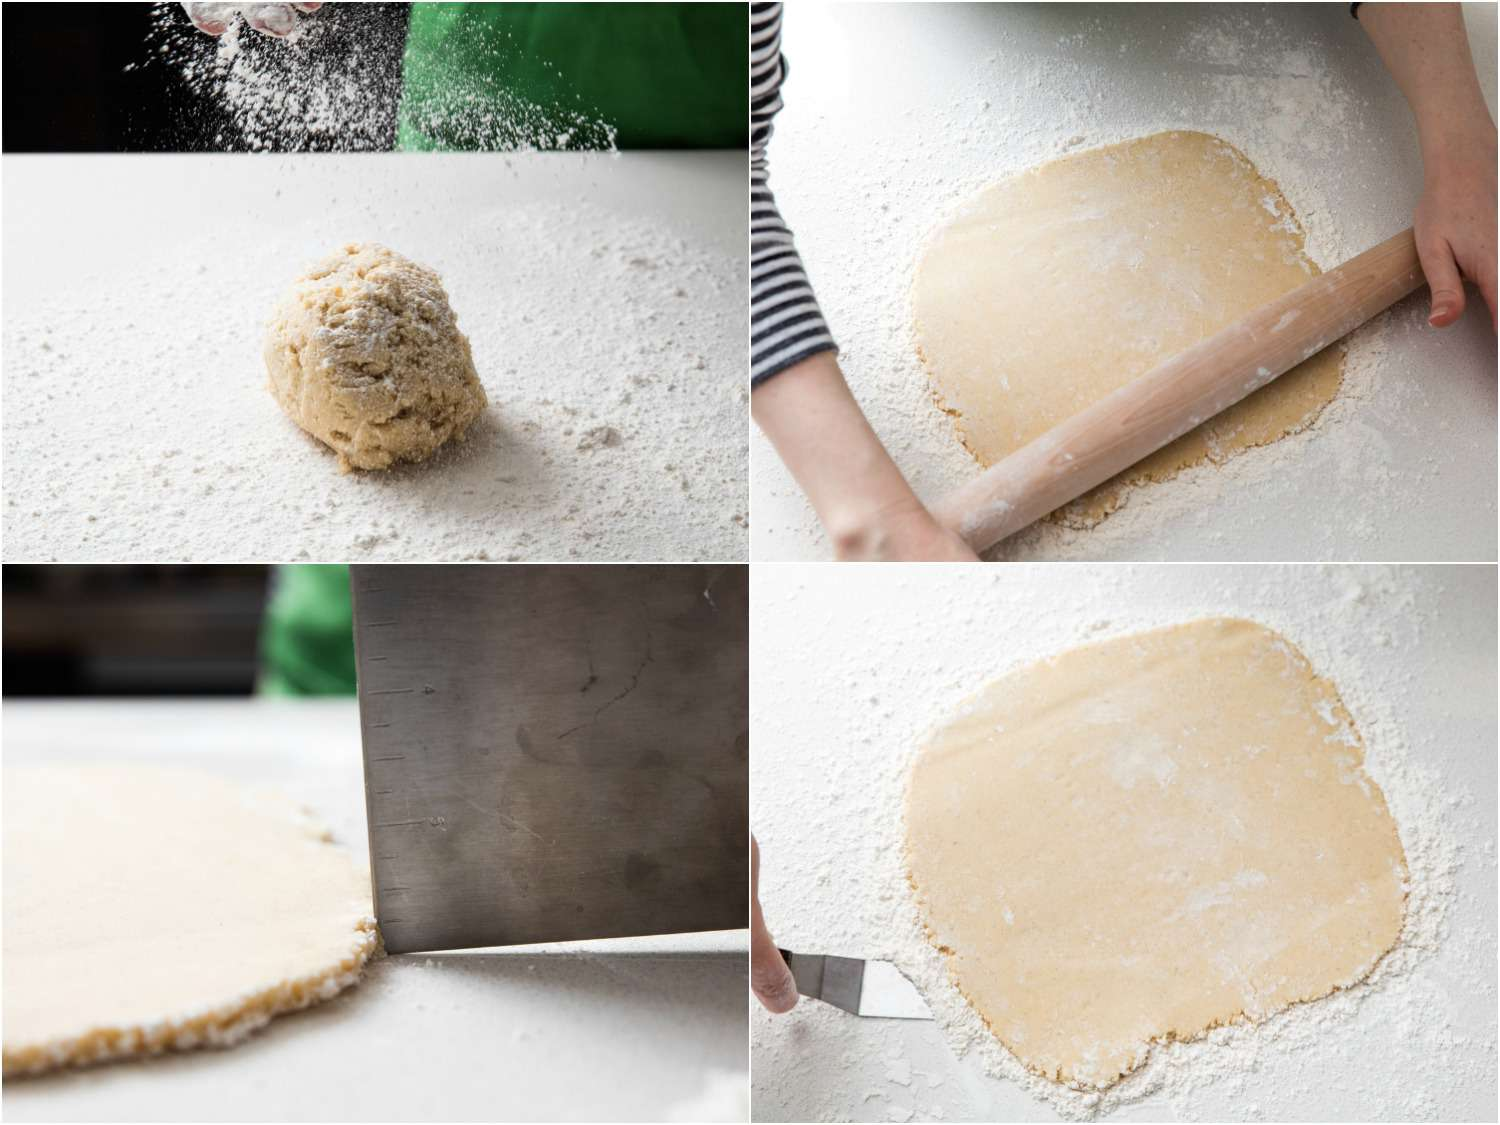 20161205-rolled-sugar-cookies-vicky-wasik-1-rolling-dough-collage2.jpg